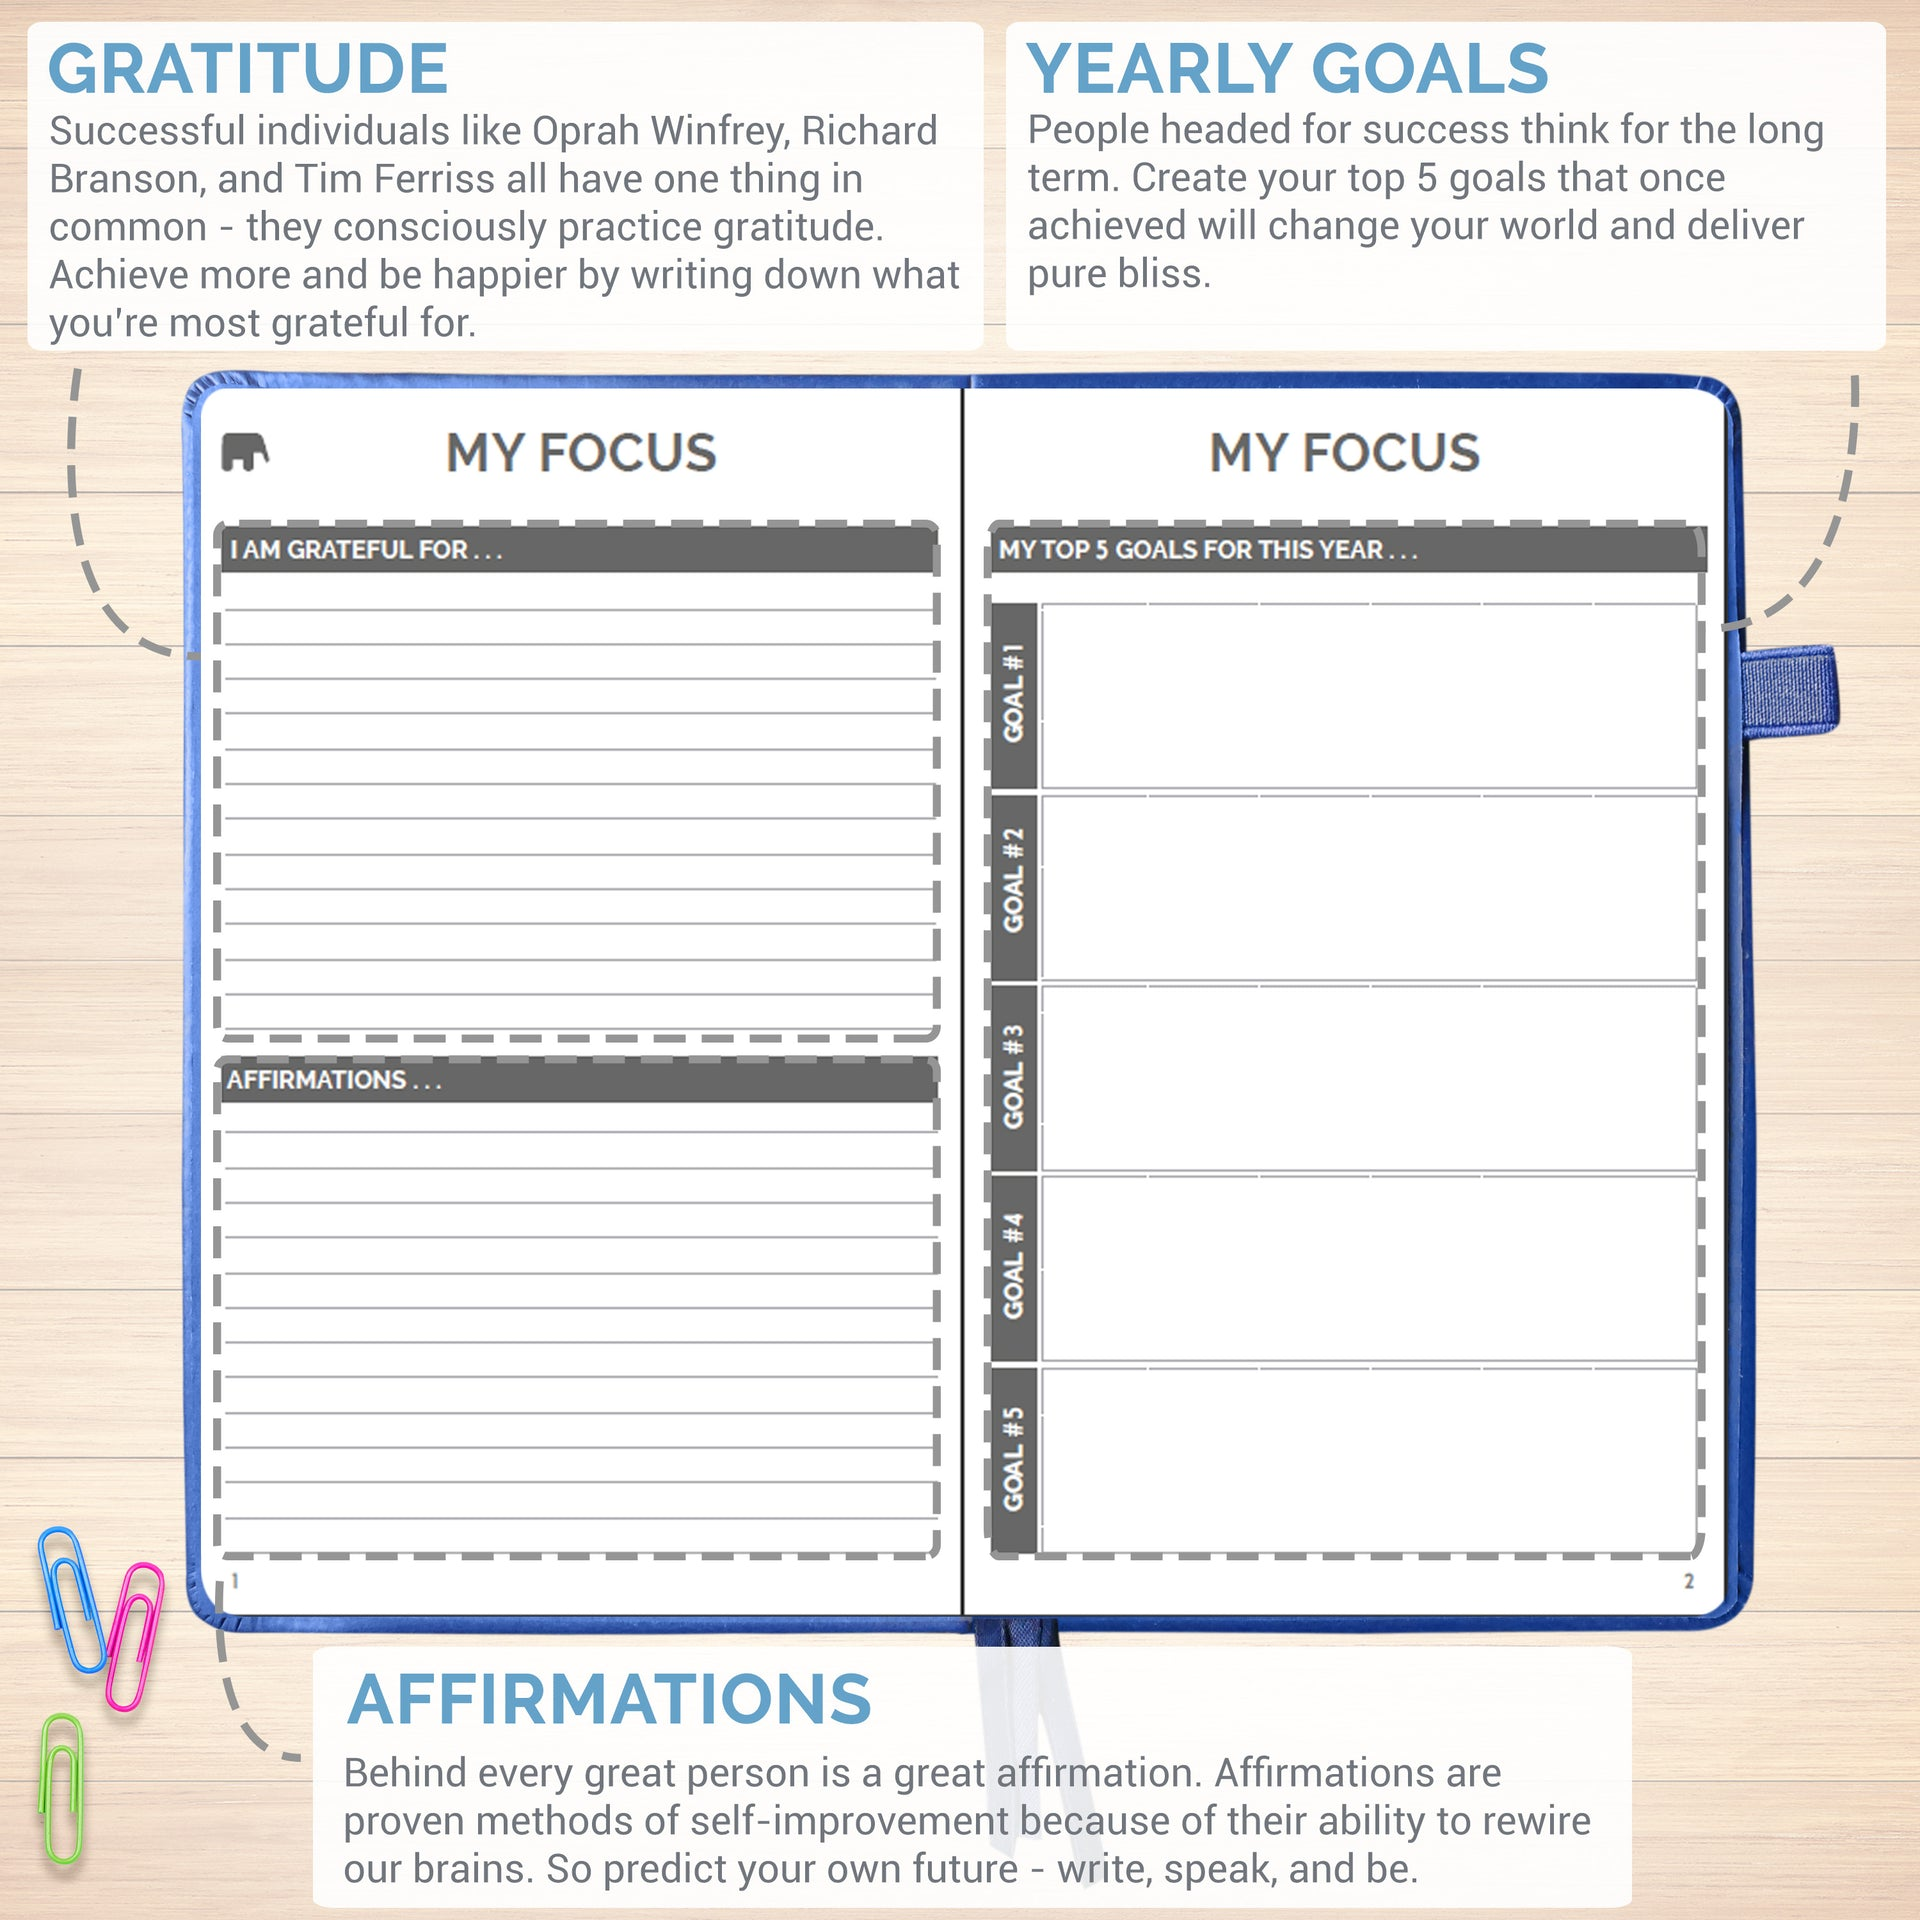 The Simple Elephant - Best Agenda Day Planner To Achieve Your Goals - Increase Productivity, Passion and Happiness - Gratitude Journal, Mindmap, Vision Board - Bonus Stickers